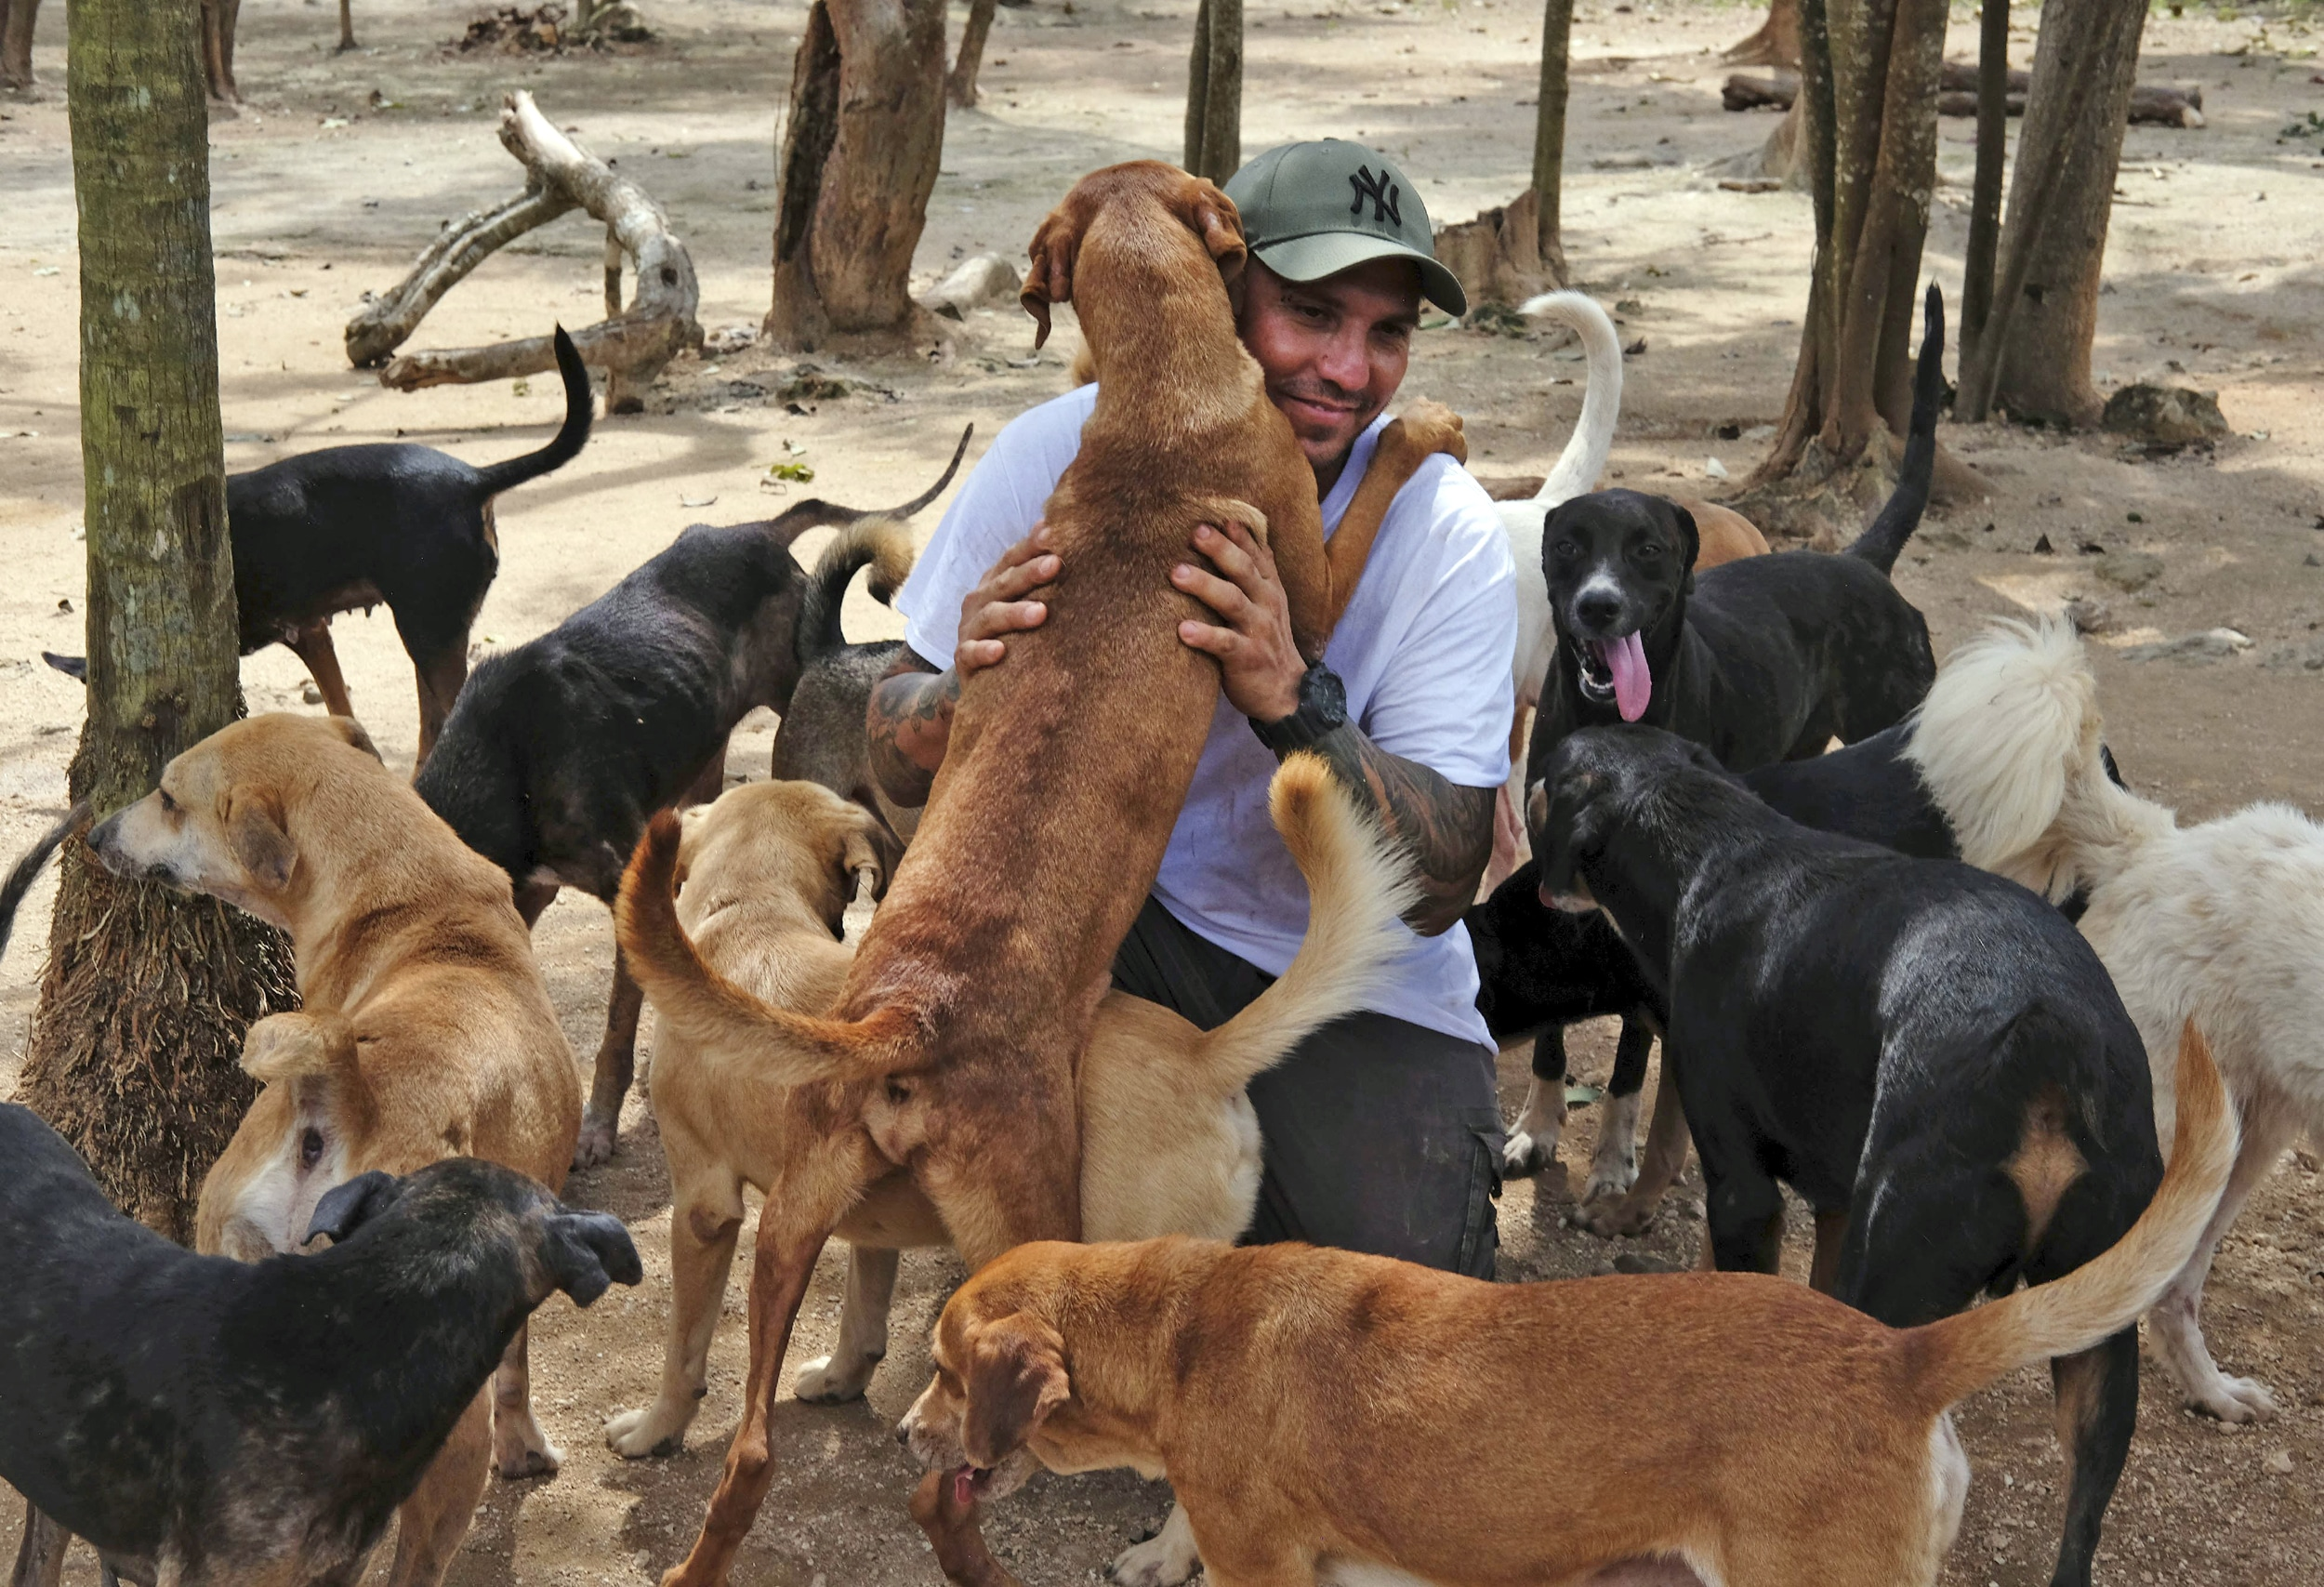 Ricardo Pimentel is greeted by dogs that he rescued at his Tierra de Animales (Land of Animals) shelter in Leona Vicario, Mexico, on Oct. 13, 2020.